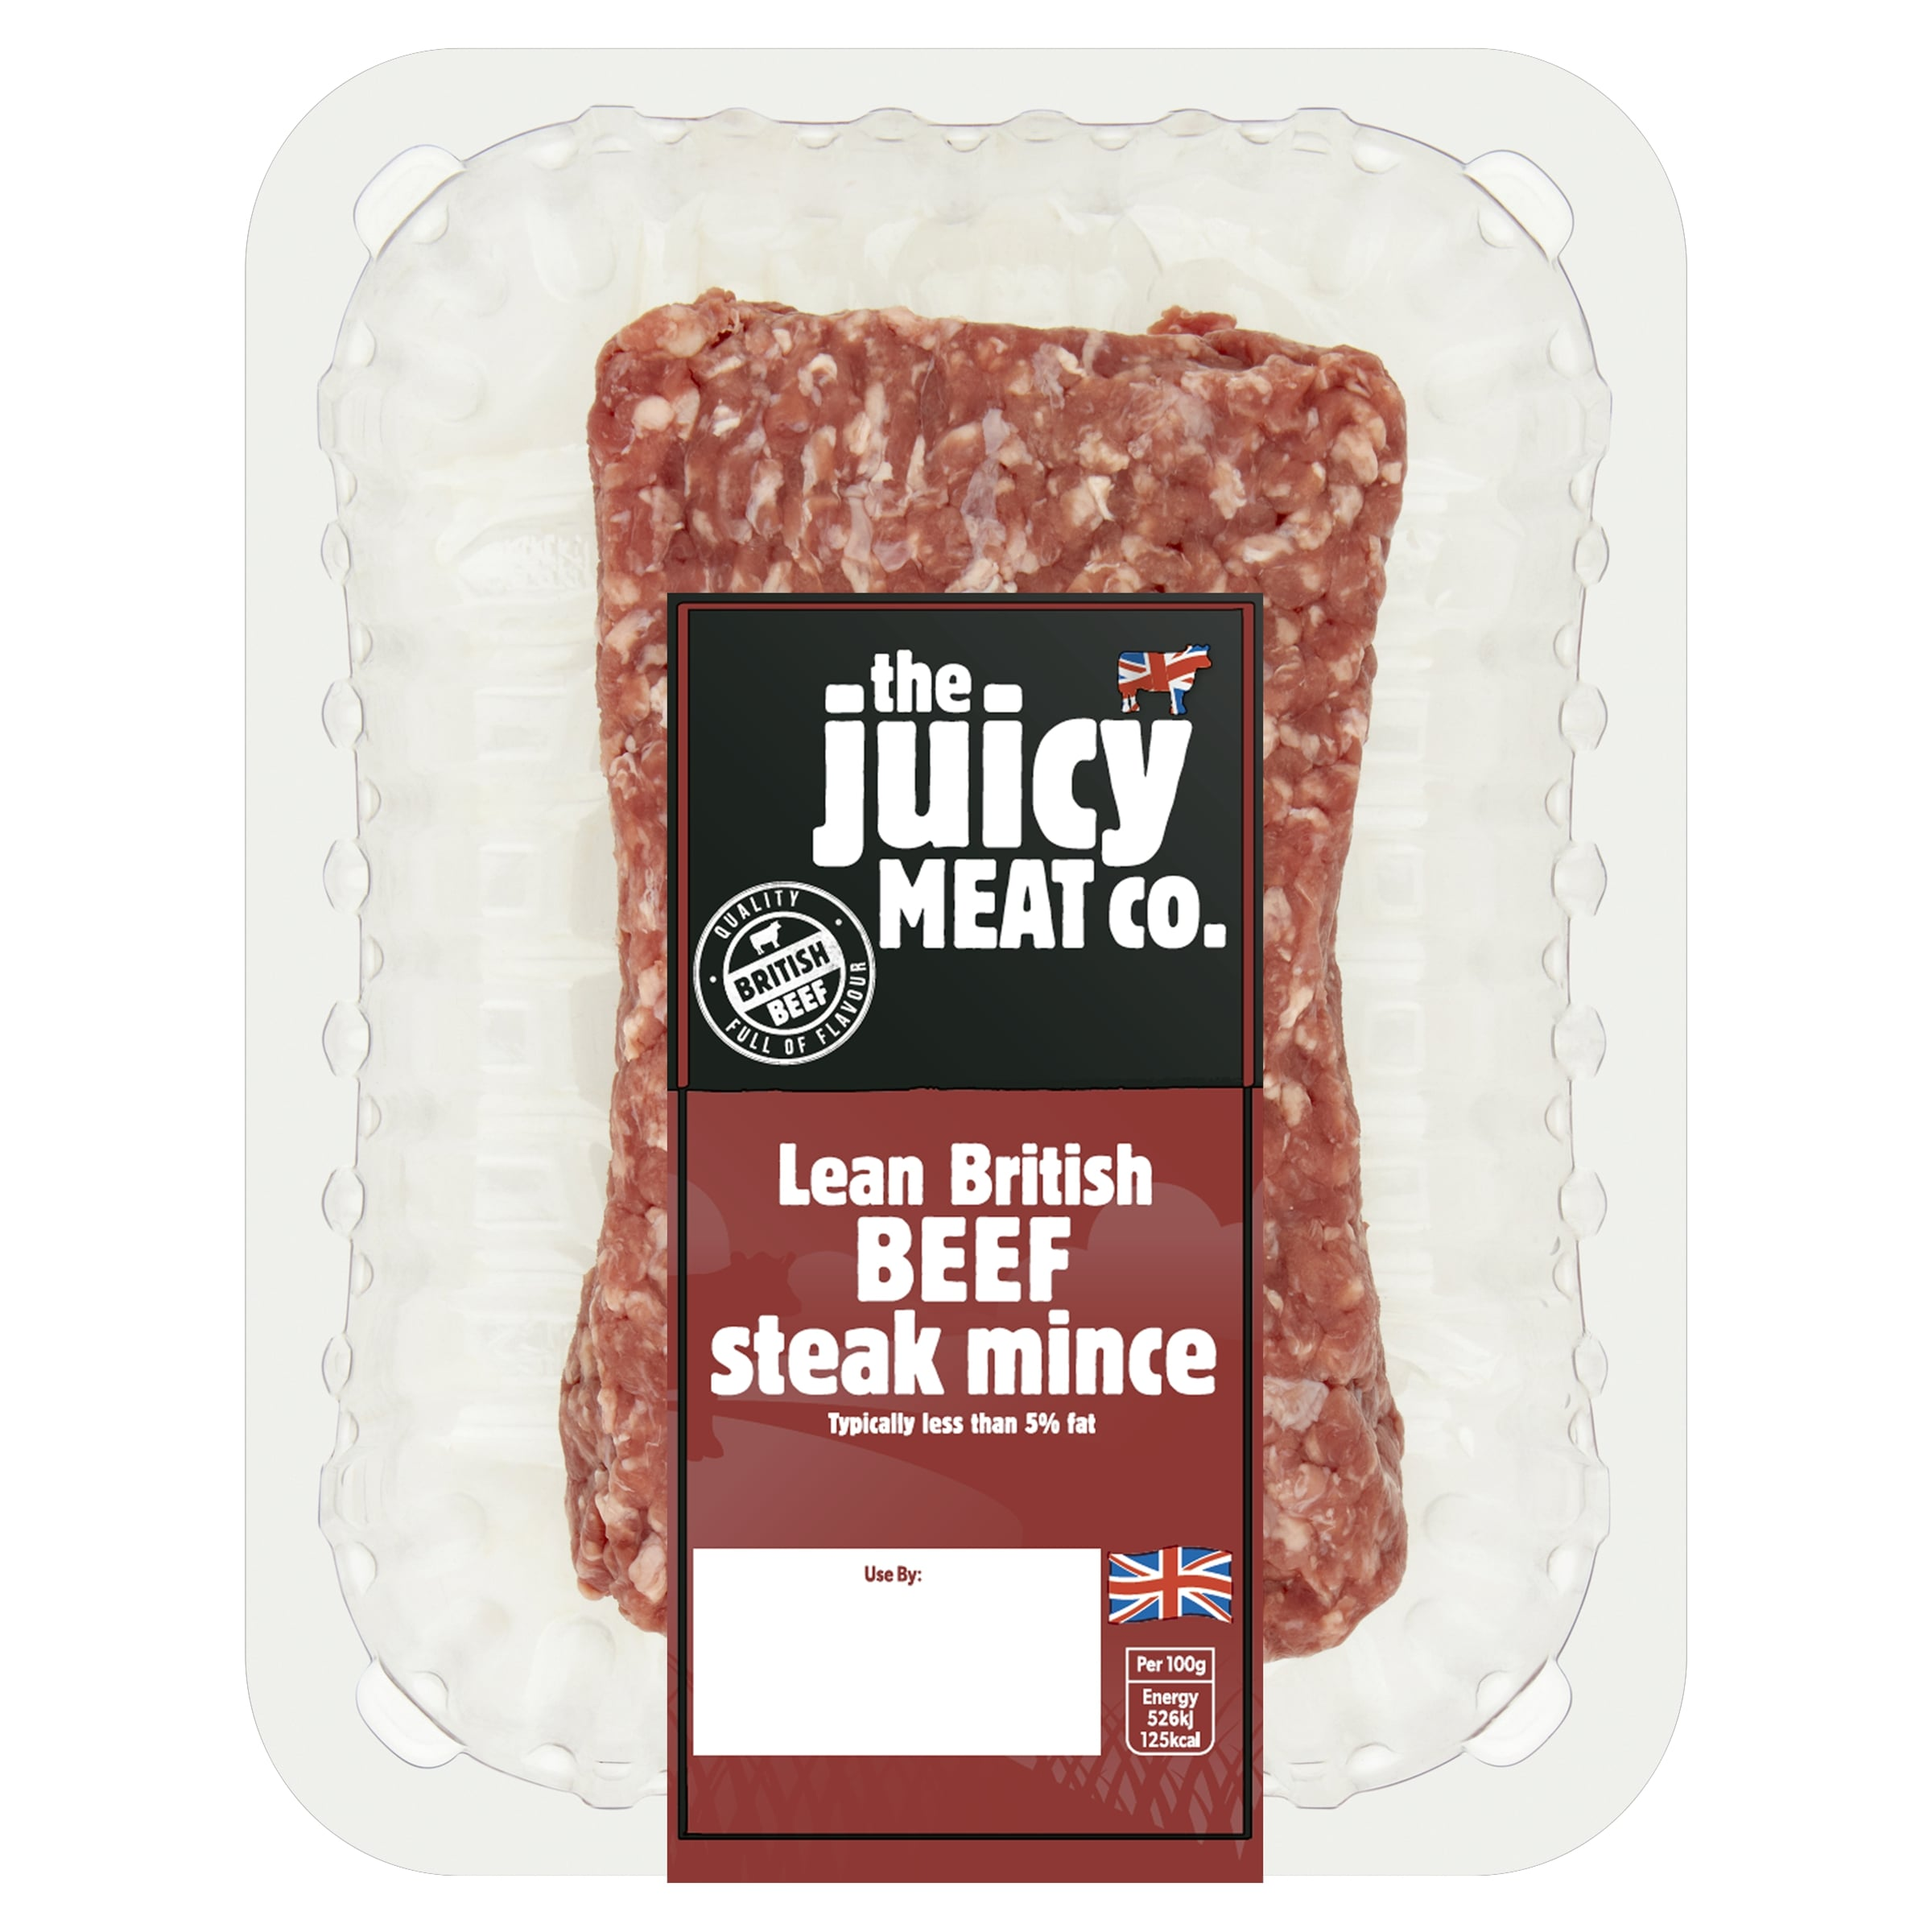 The_Juicy_Meat_Co._Lean_British_Beef_Steak_Mince_4.jpg